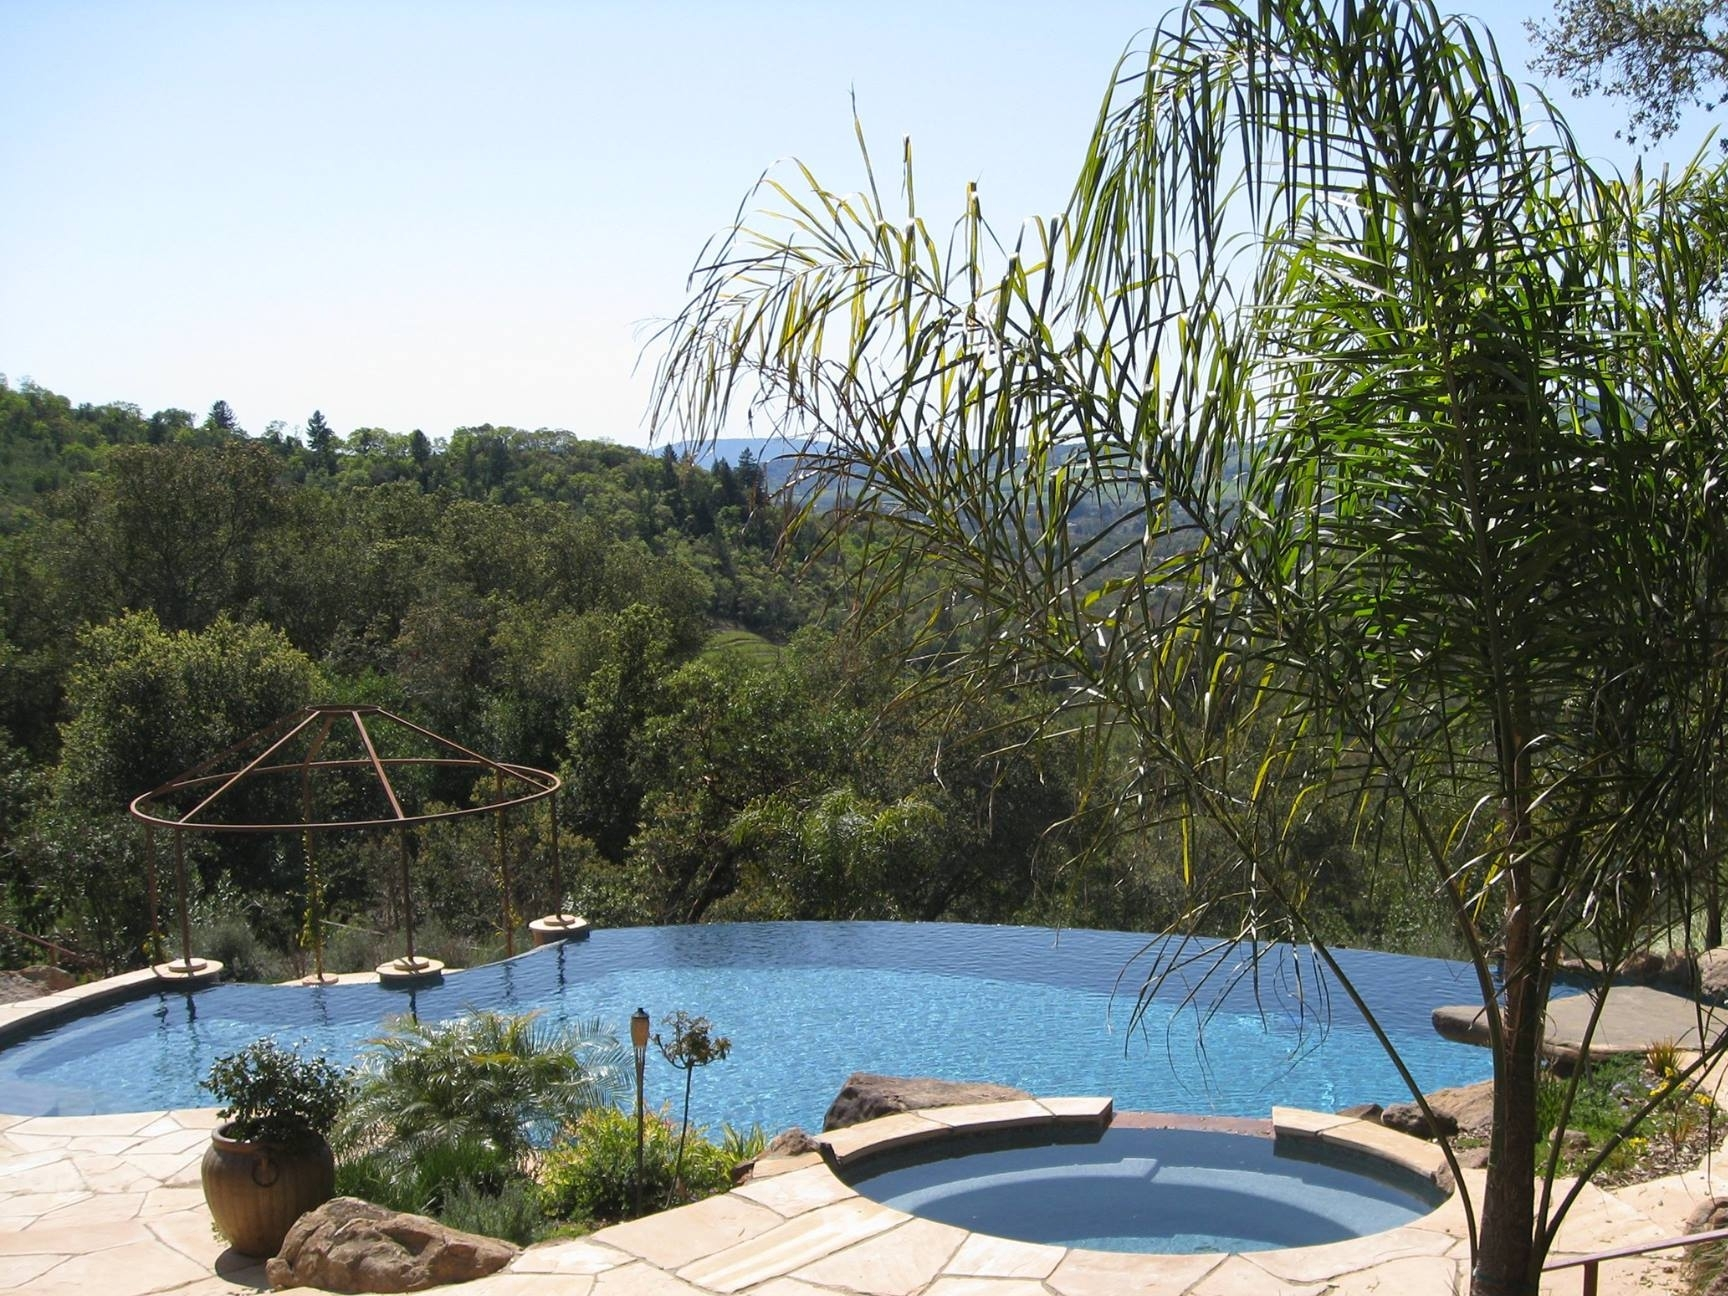 Town and Country Pools and Spas